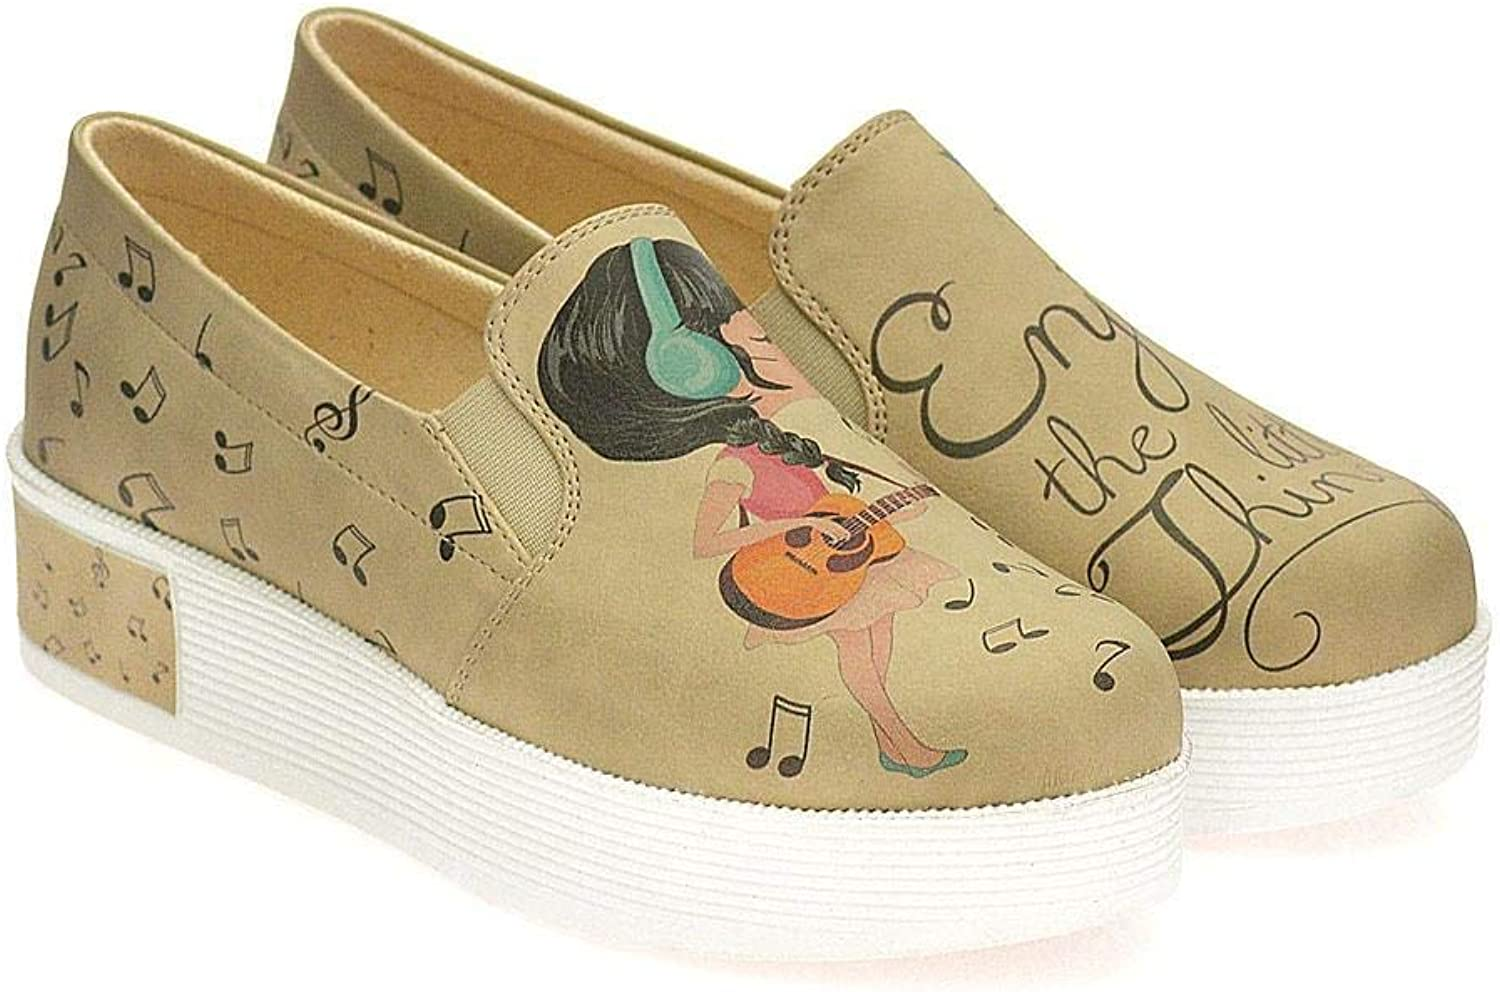 Enjoy The Little Things Slip on Turnschuhe schuhe schuhe schuhe VN4223  e3f5a6